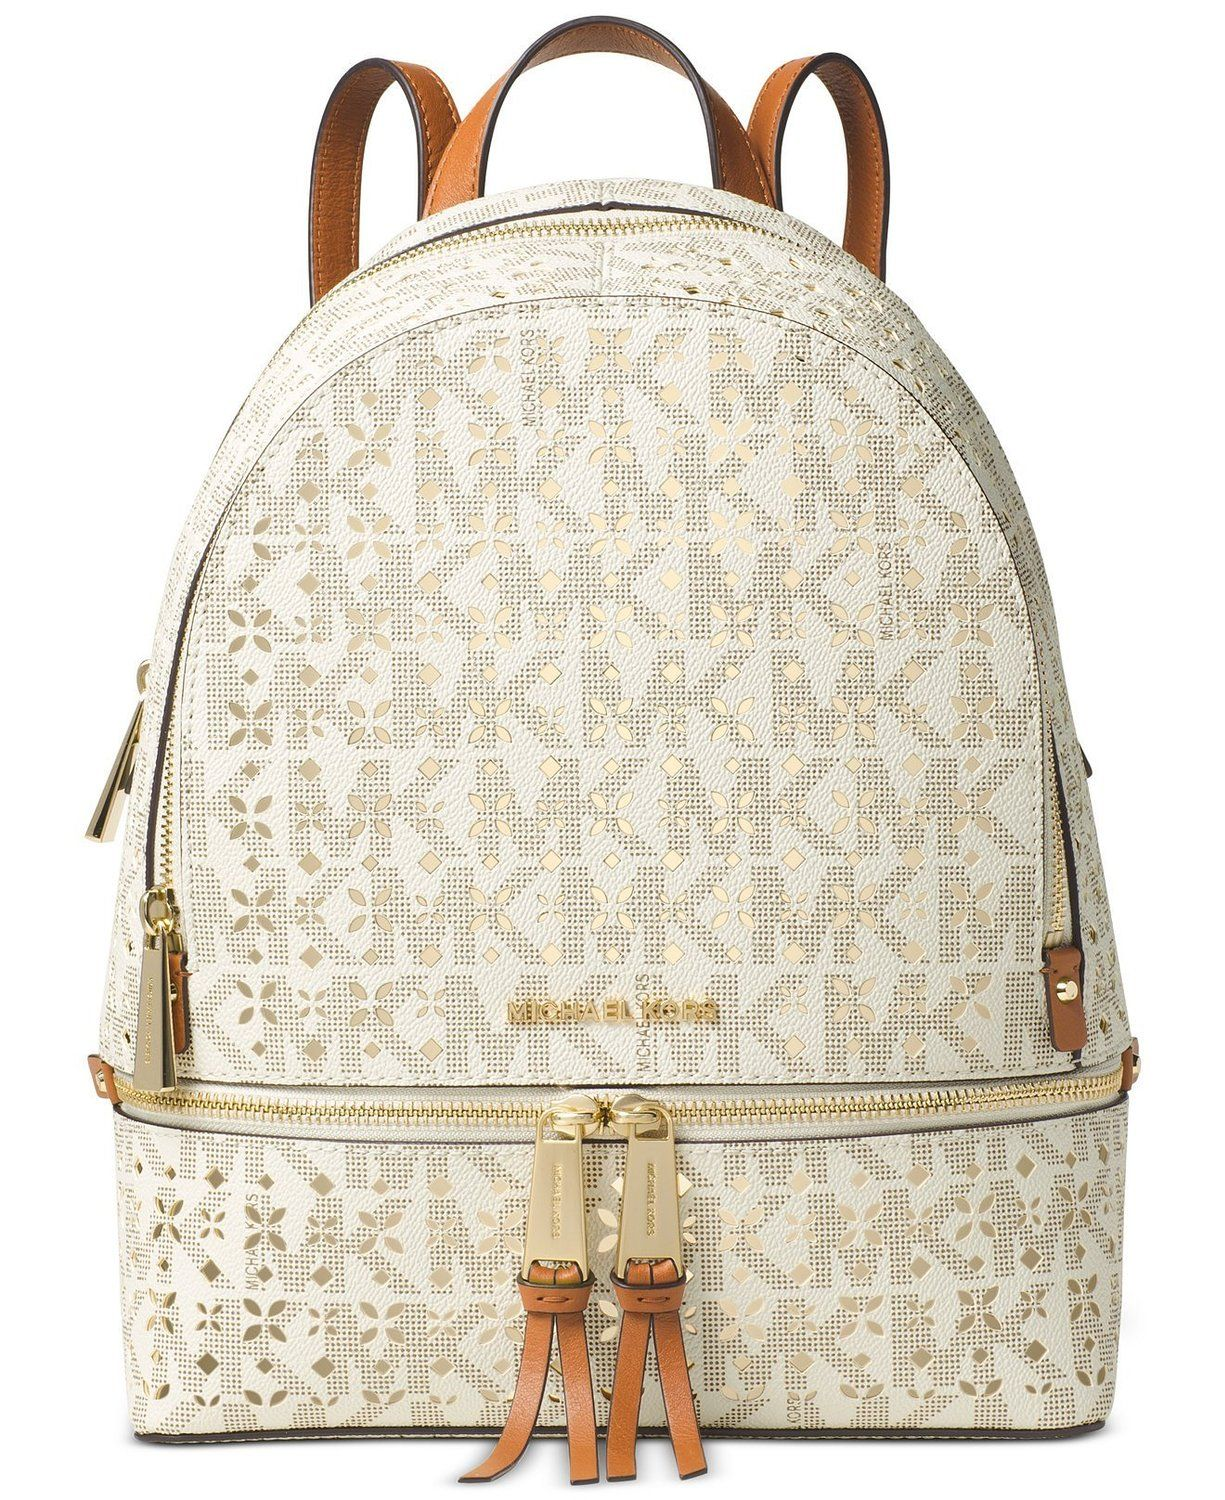 109a75e75923 Michael Kors Women s Rhea Medium Zip Leather Backpack Tote     Startling  review available here   Backpacking bags